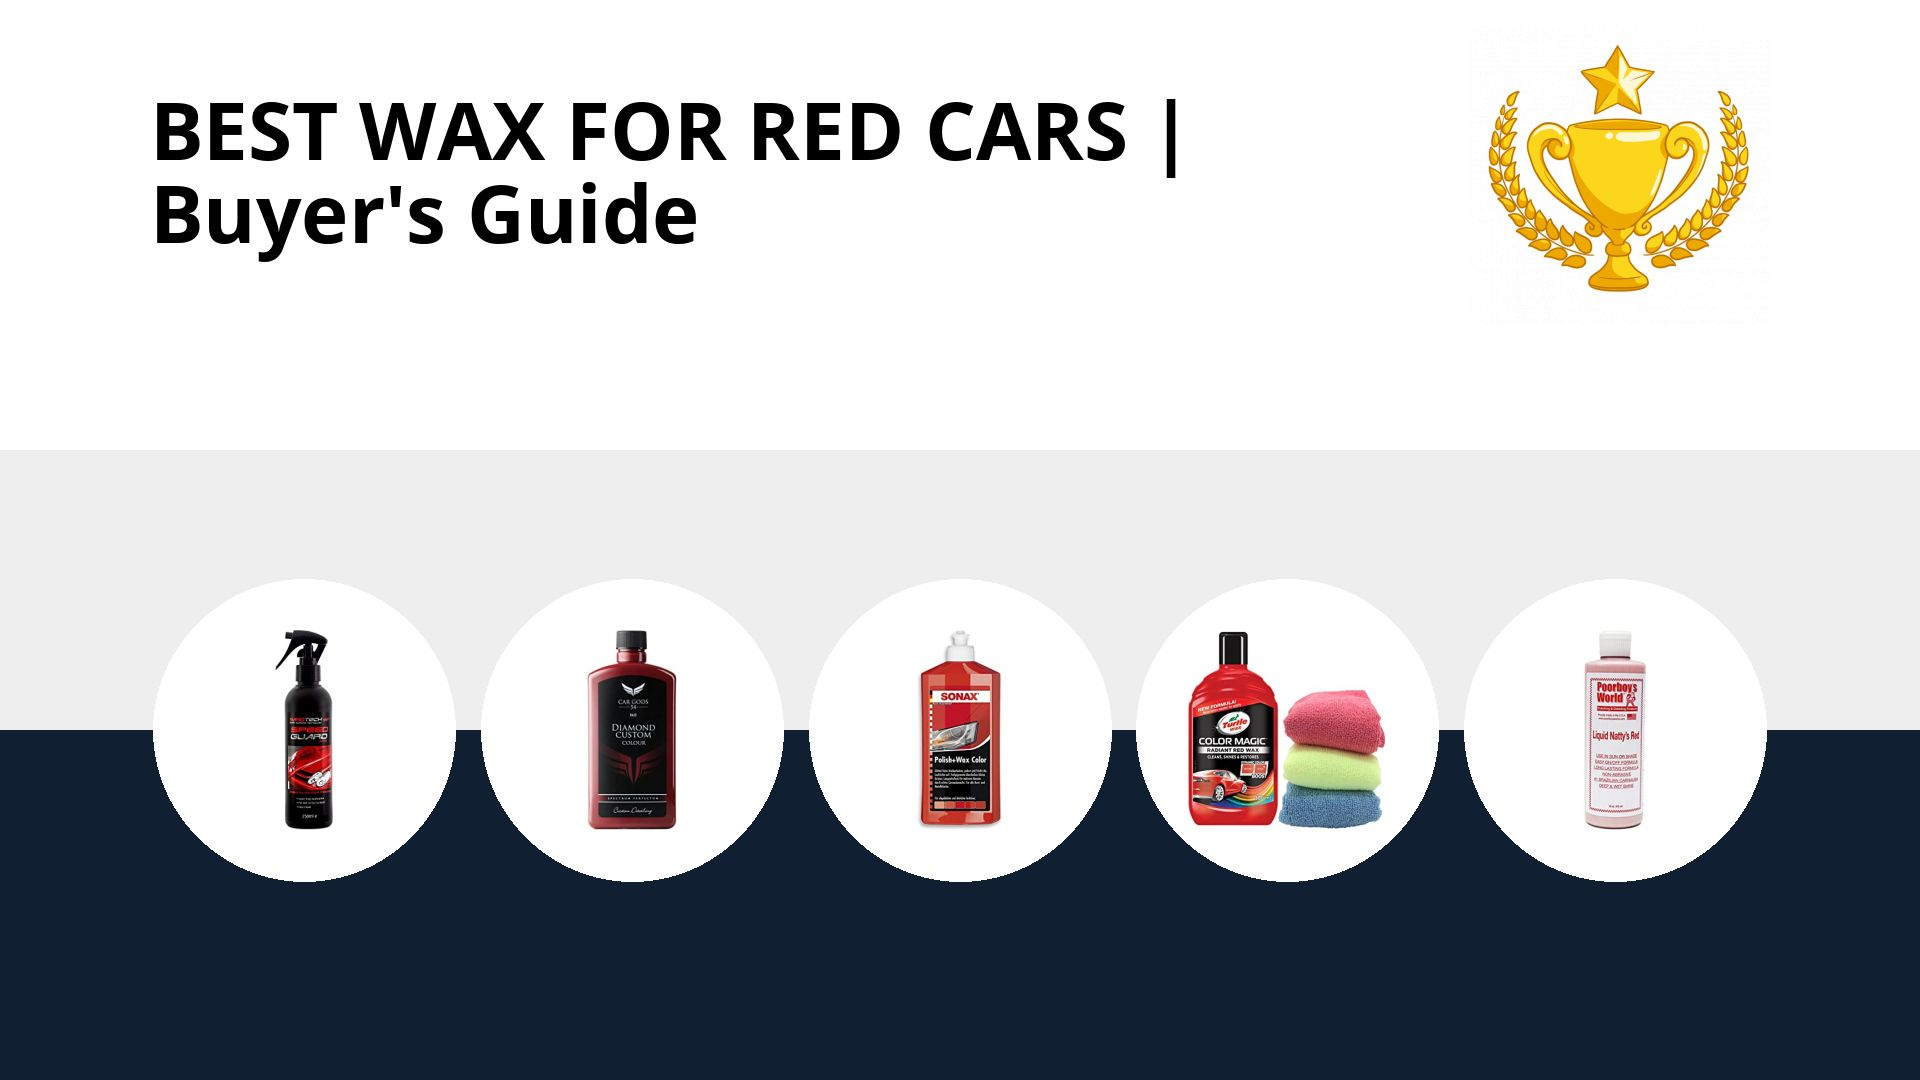 Best Wax For Red Cars: image